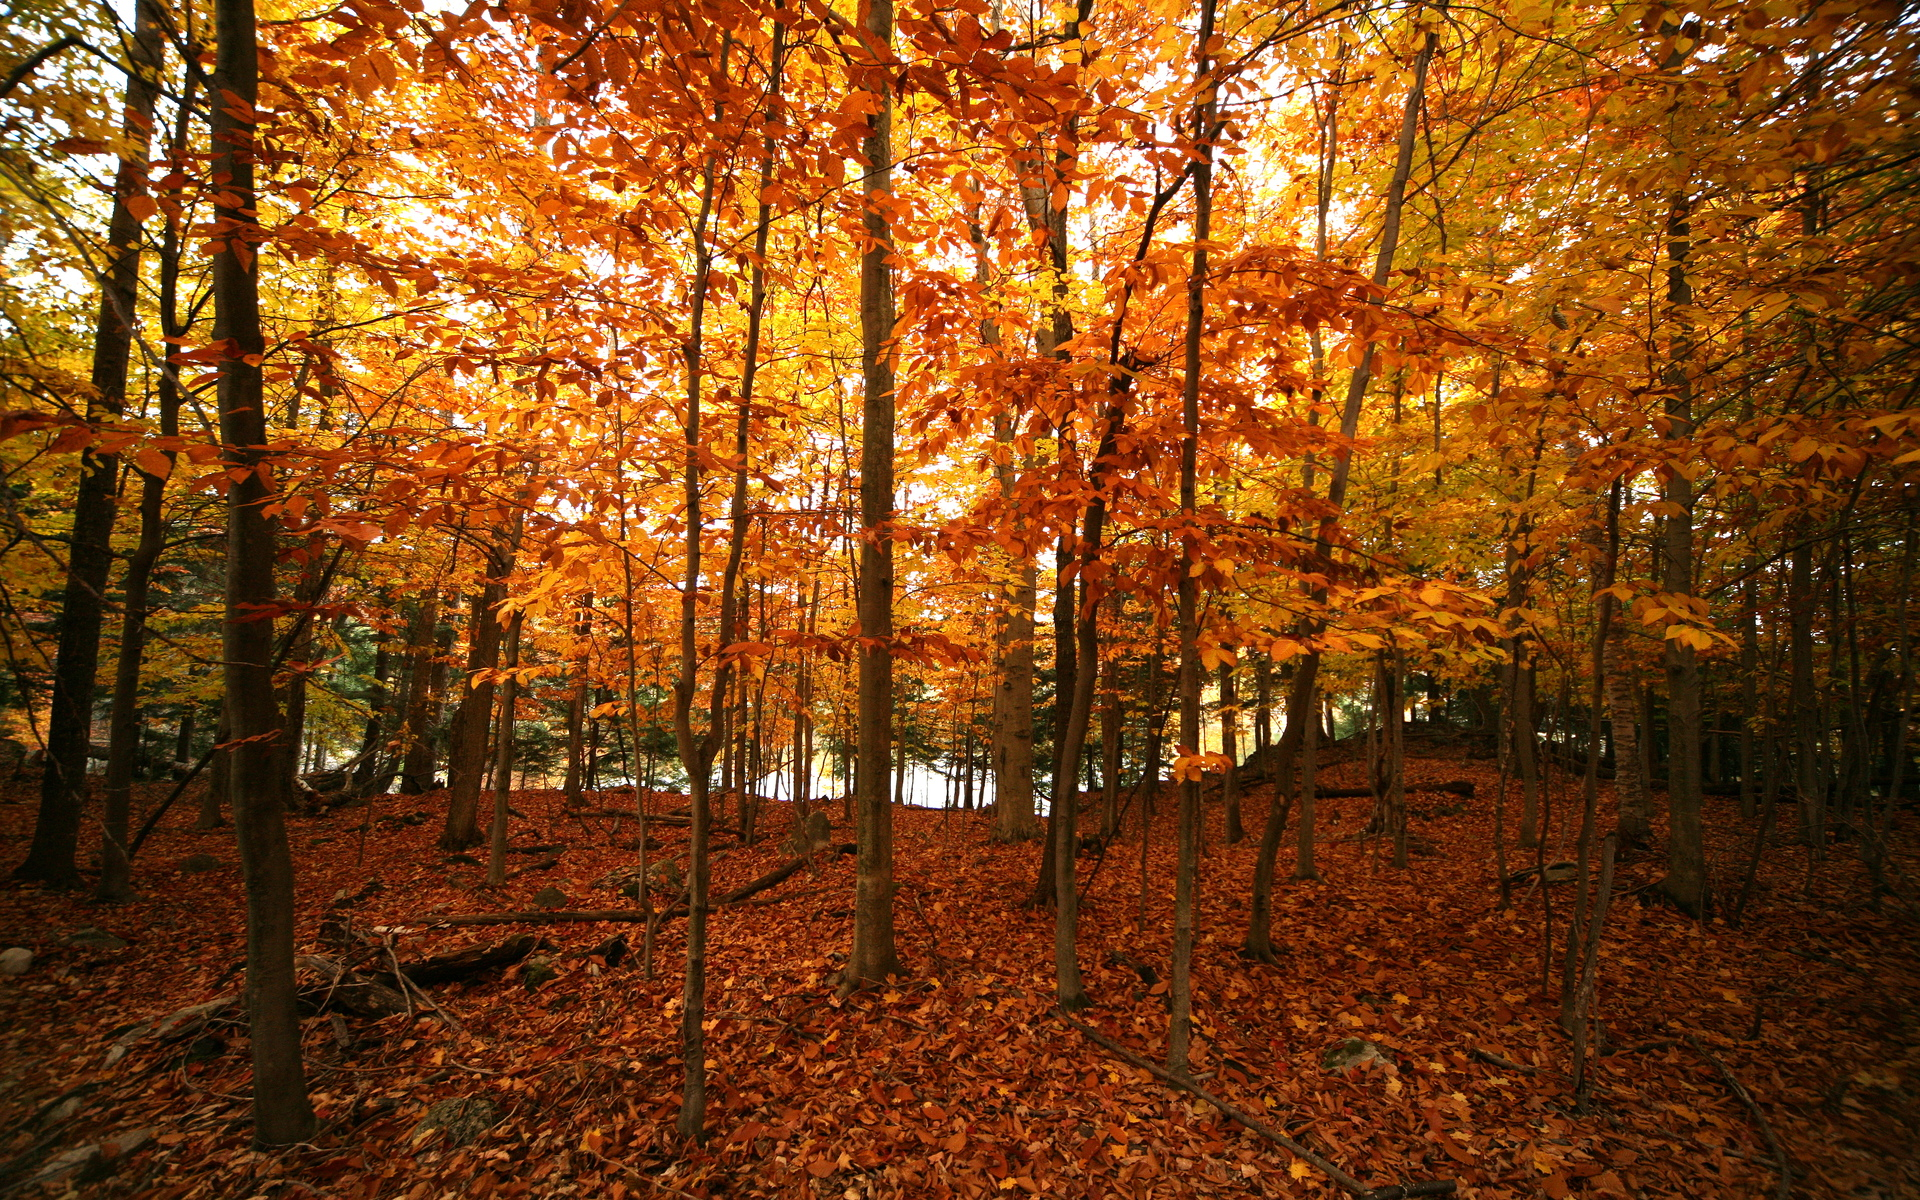 Fall Desktop Backgrounds Widescreen